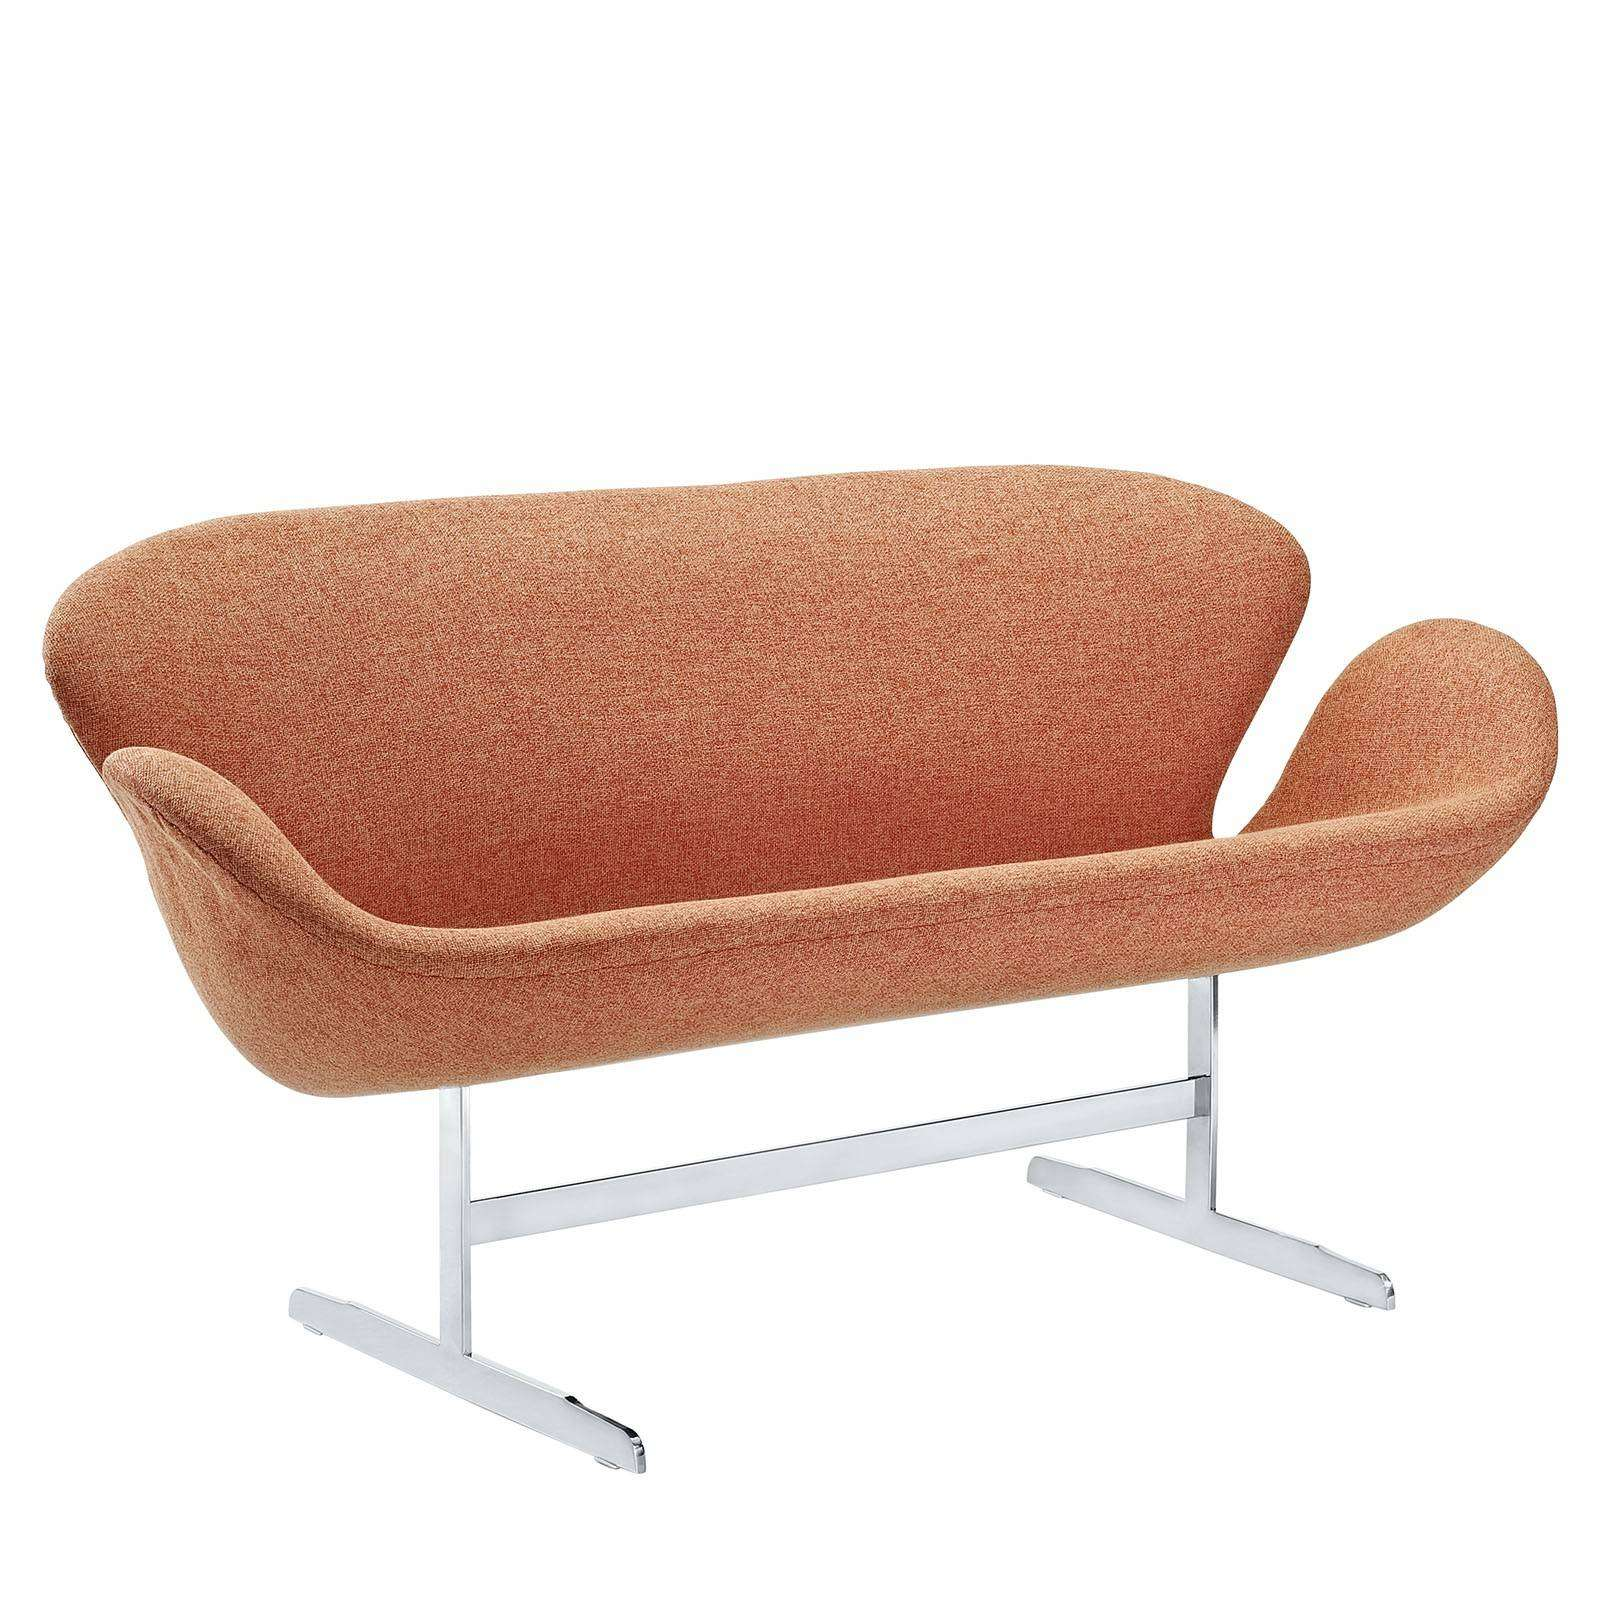 Jacobsen Style Swan Love Seat Couch Wool